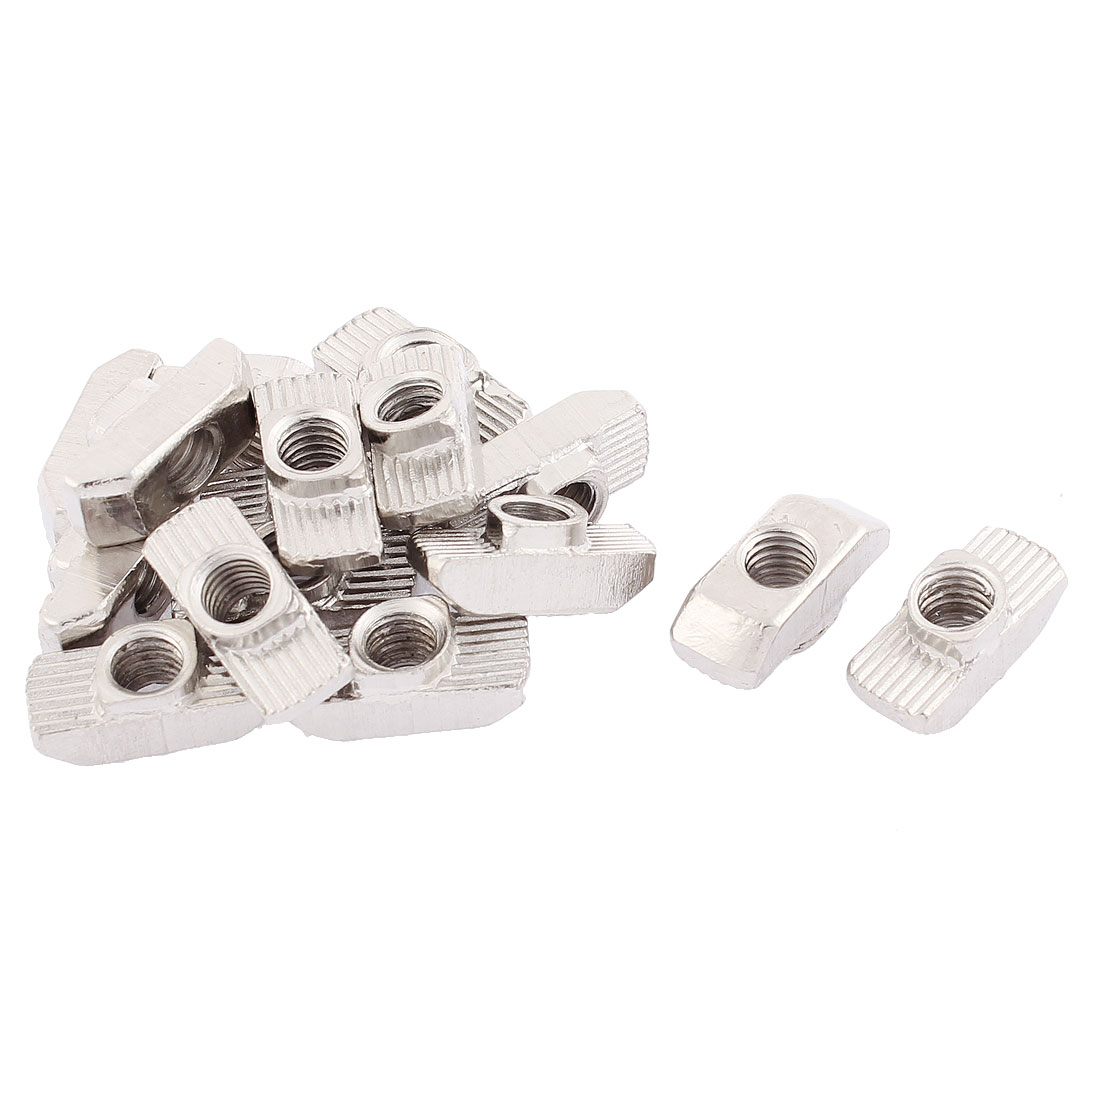 M6 Thread Dia Drop In Type T Slot Nuts Silver Tone 16pcs